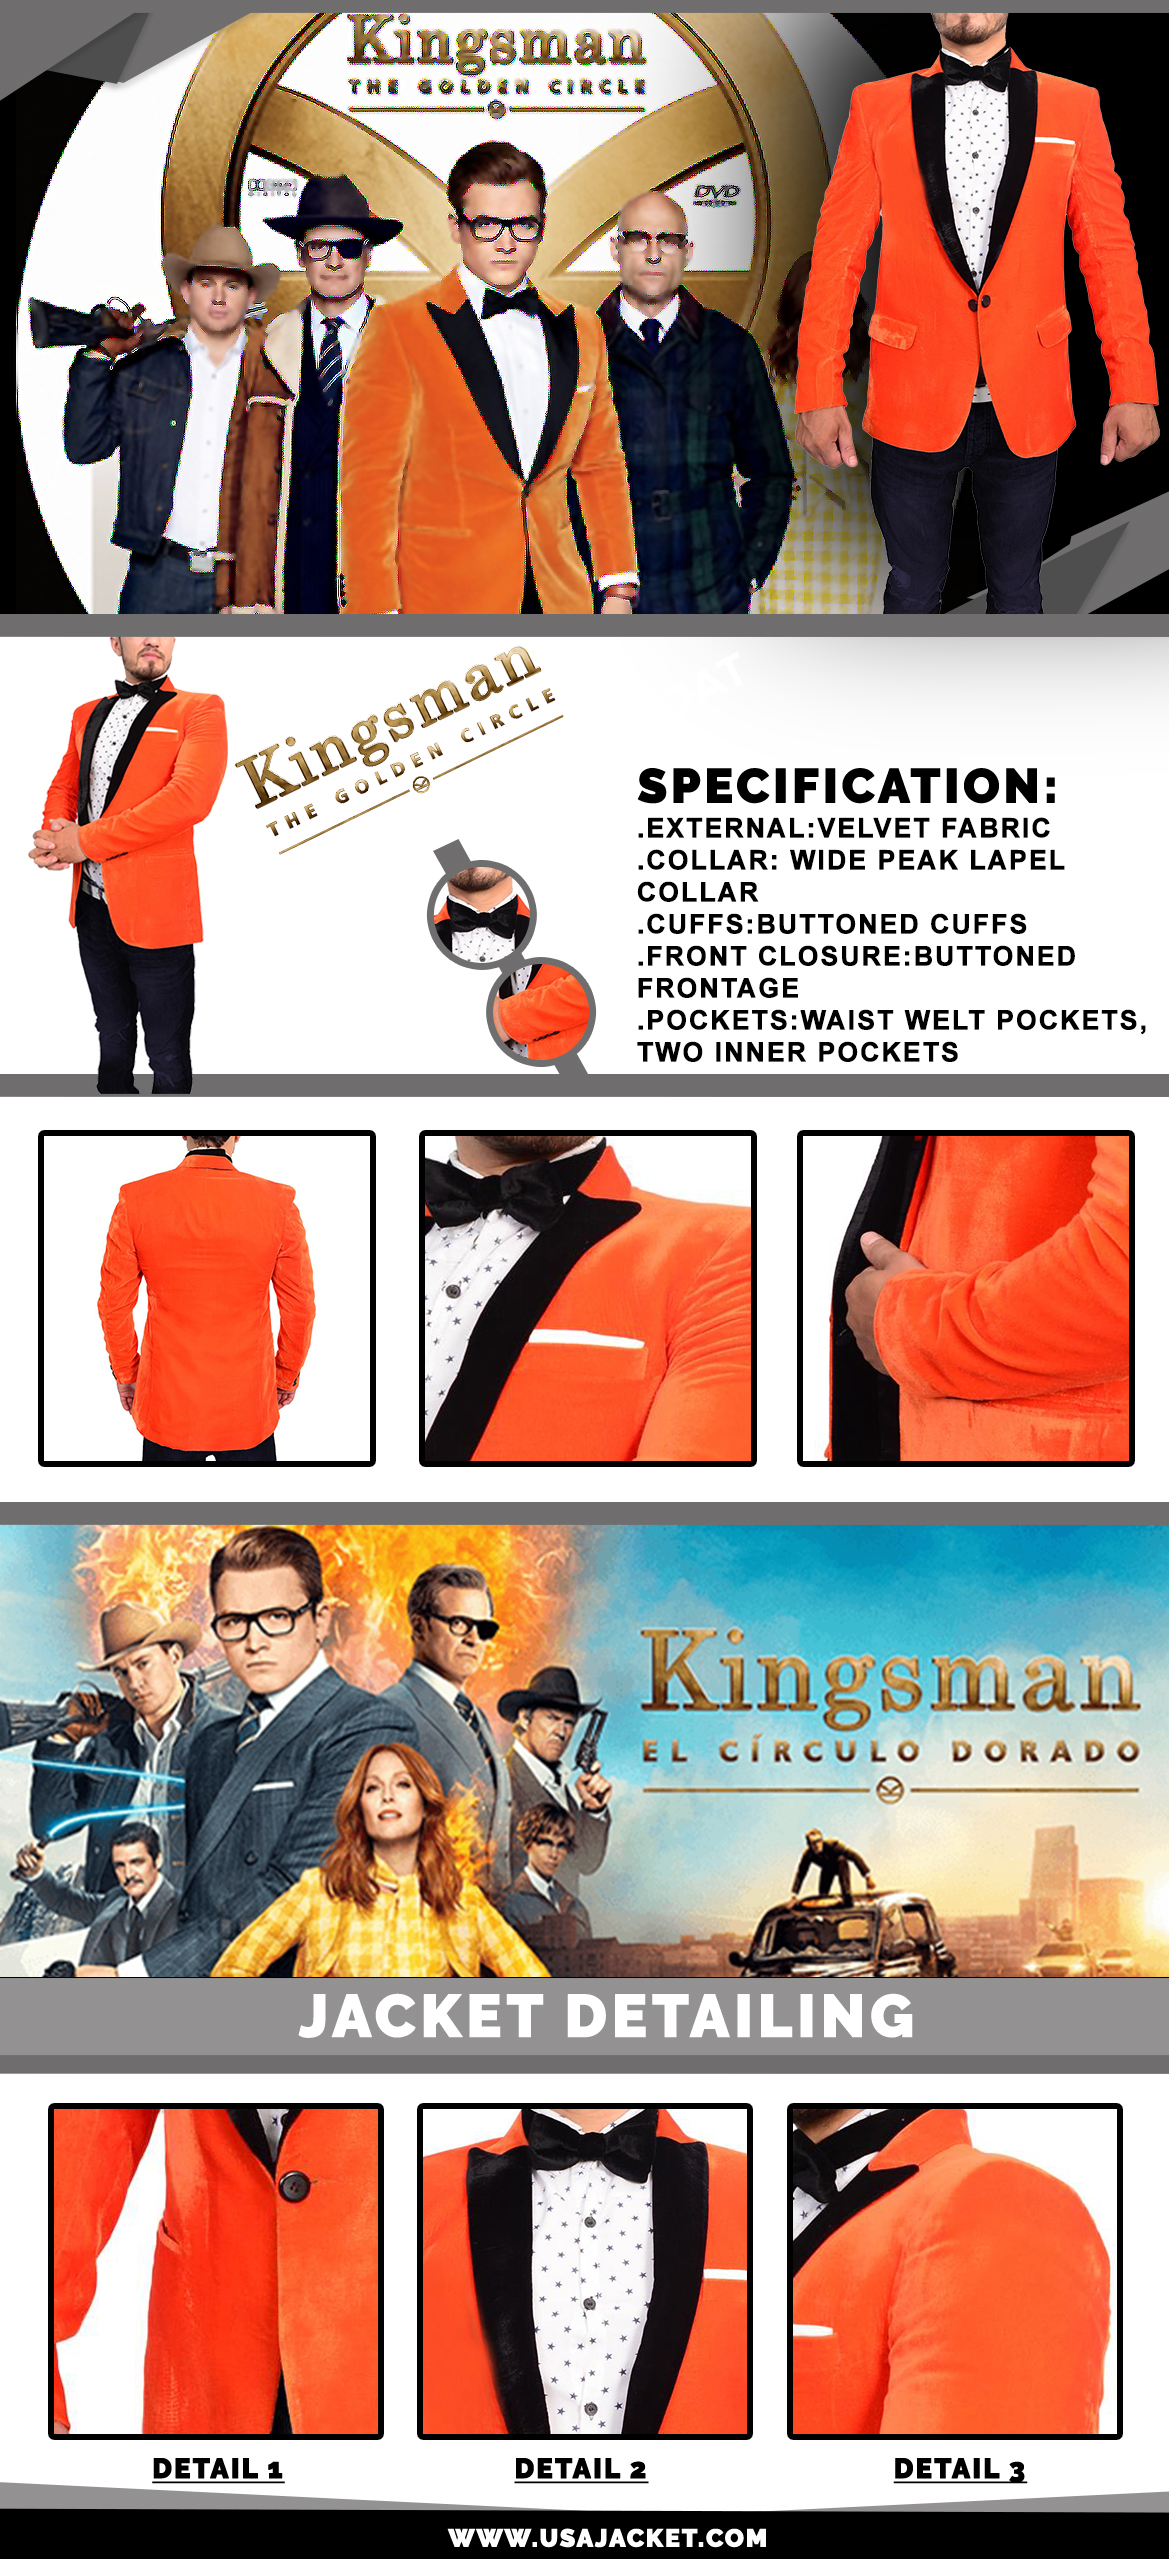 The Golden Circle Orange Dinner Tuxedo Jacket Suit